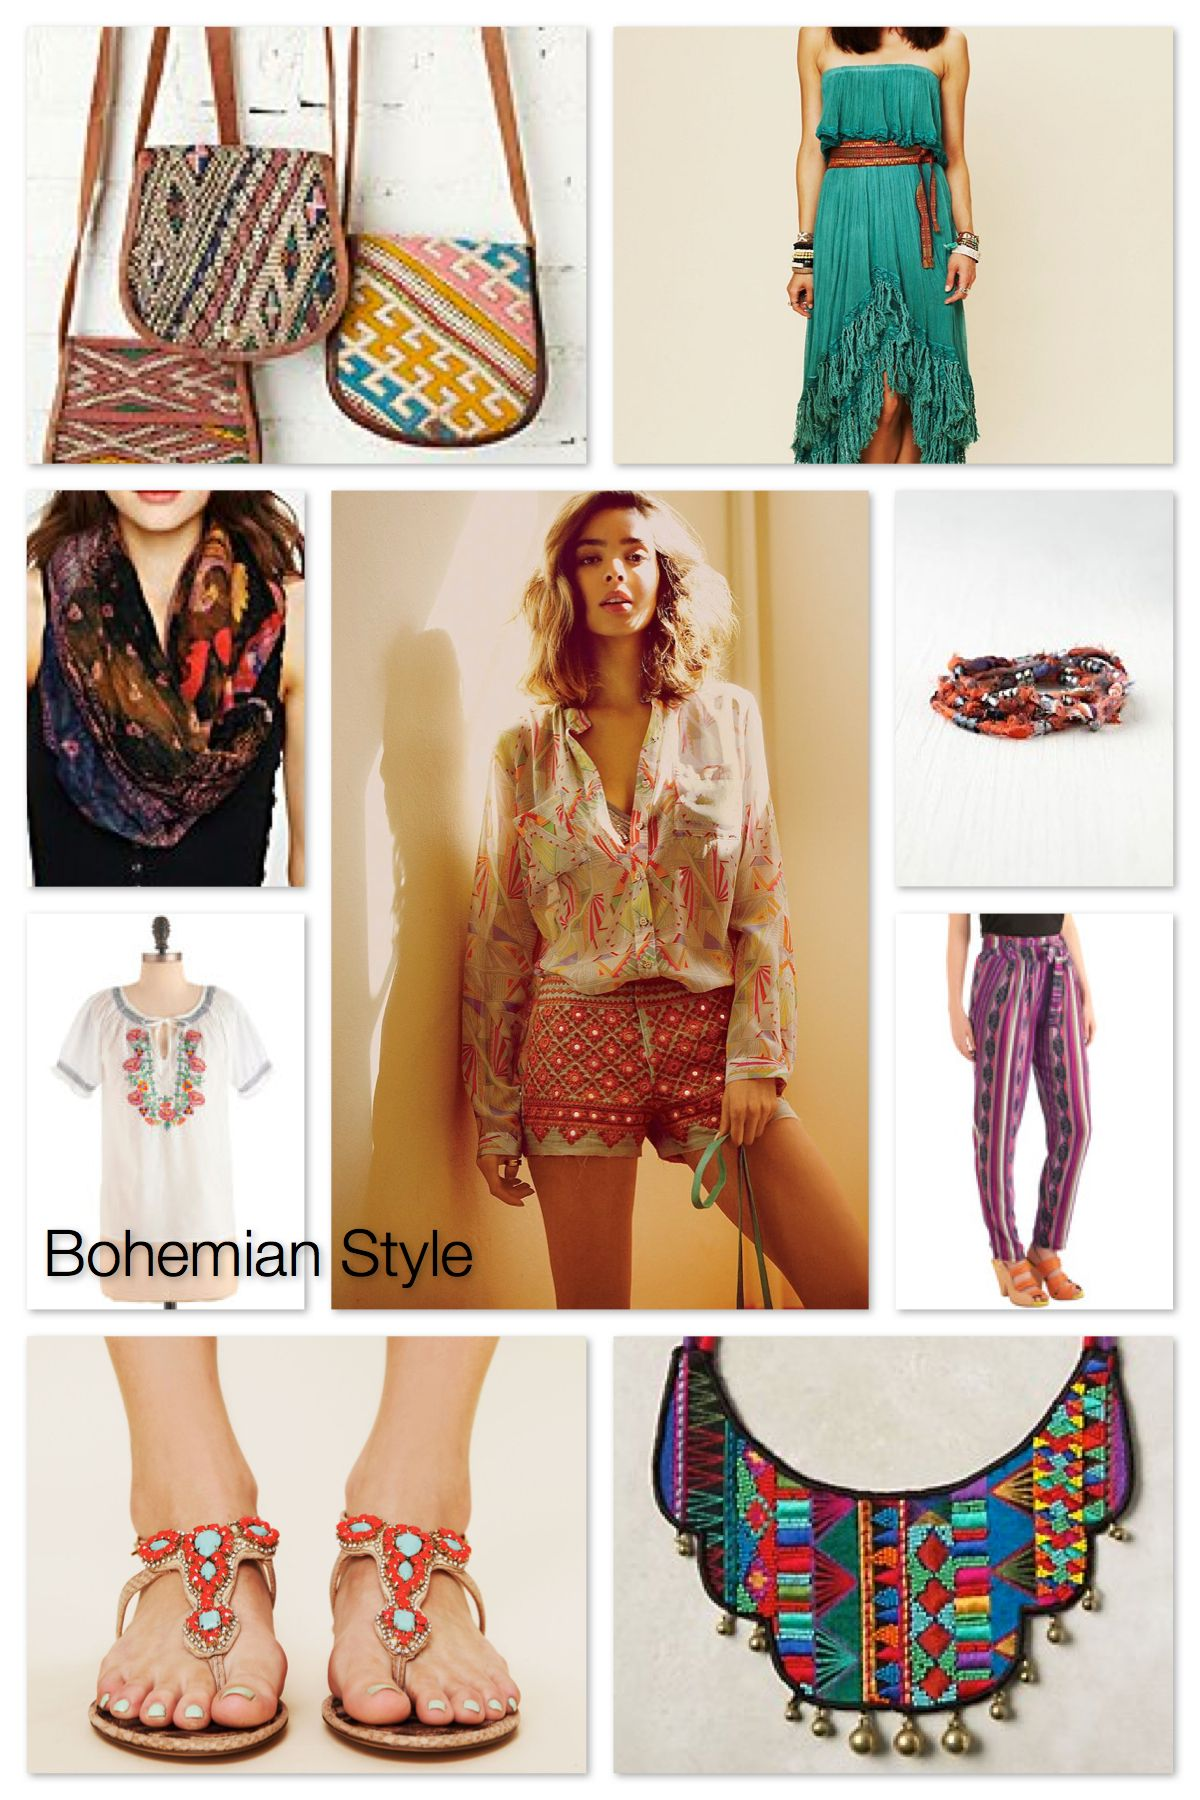 Bohemian Style Breakdown Chic Clothing Bohemian And Boho